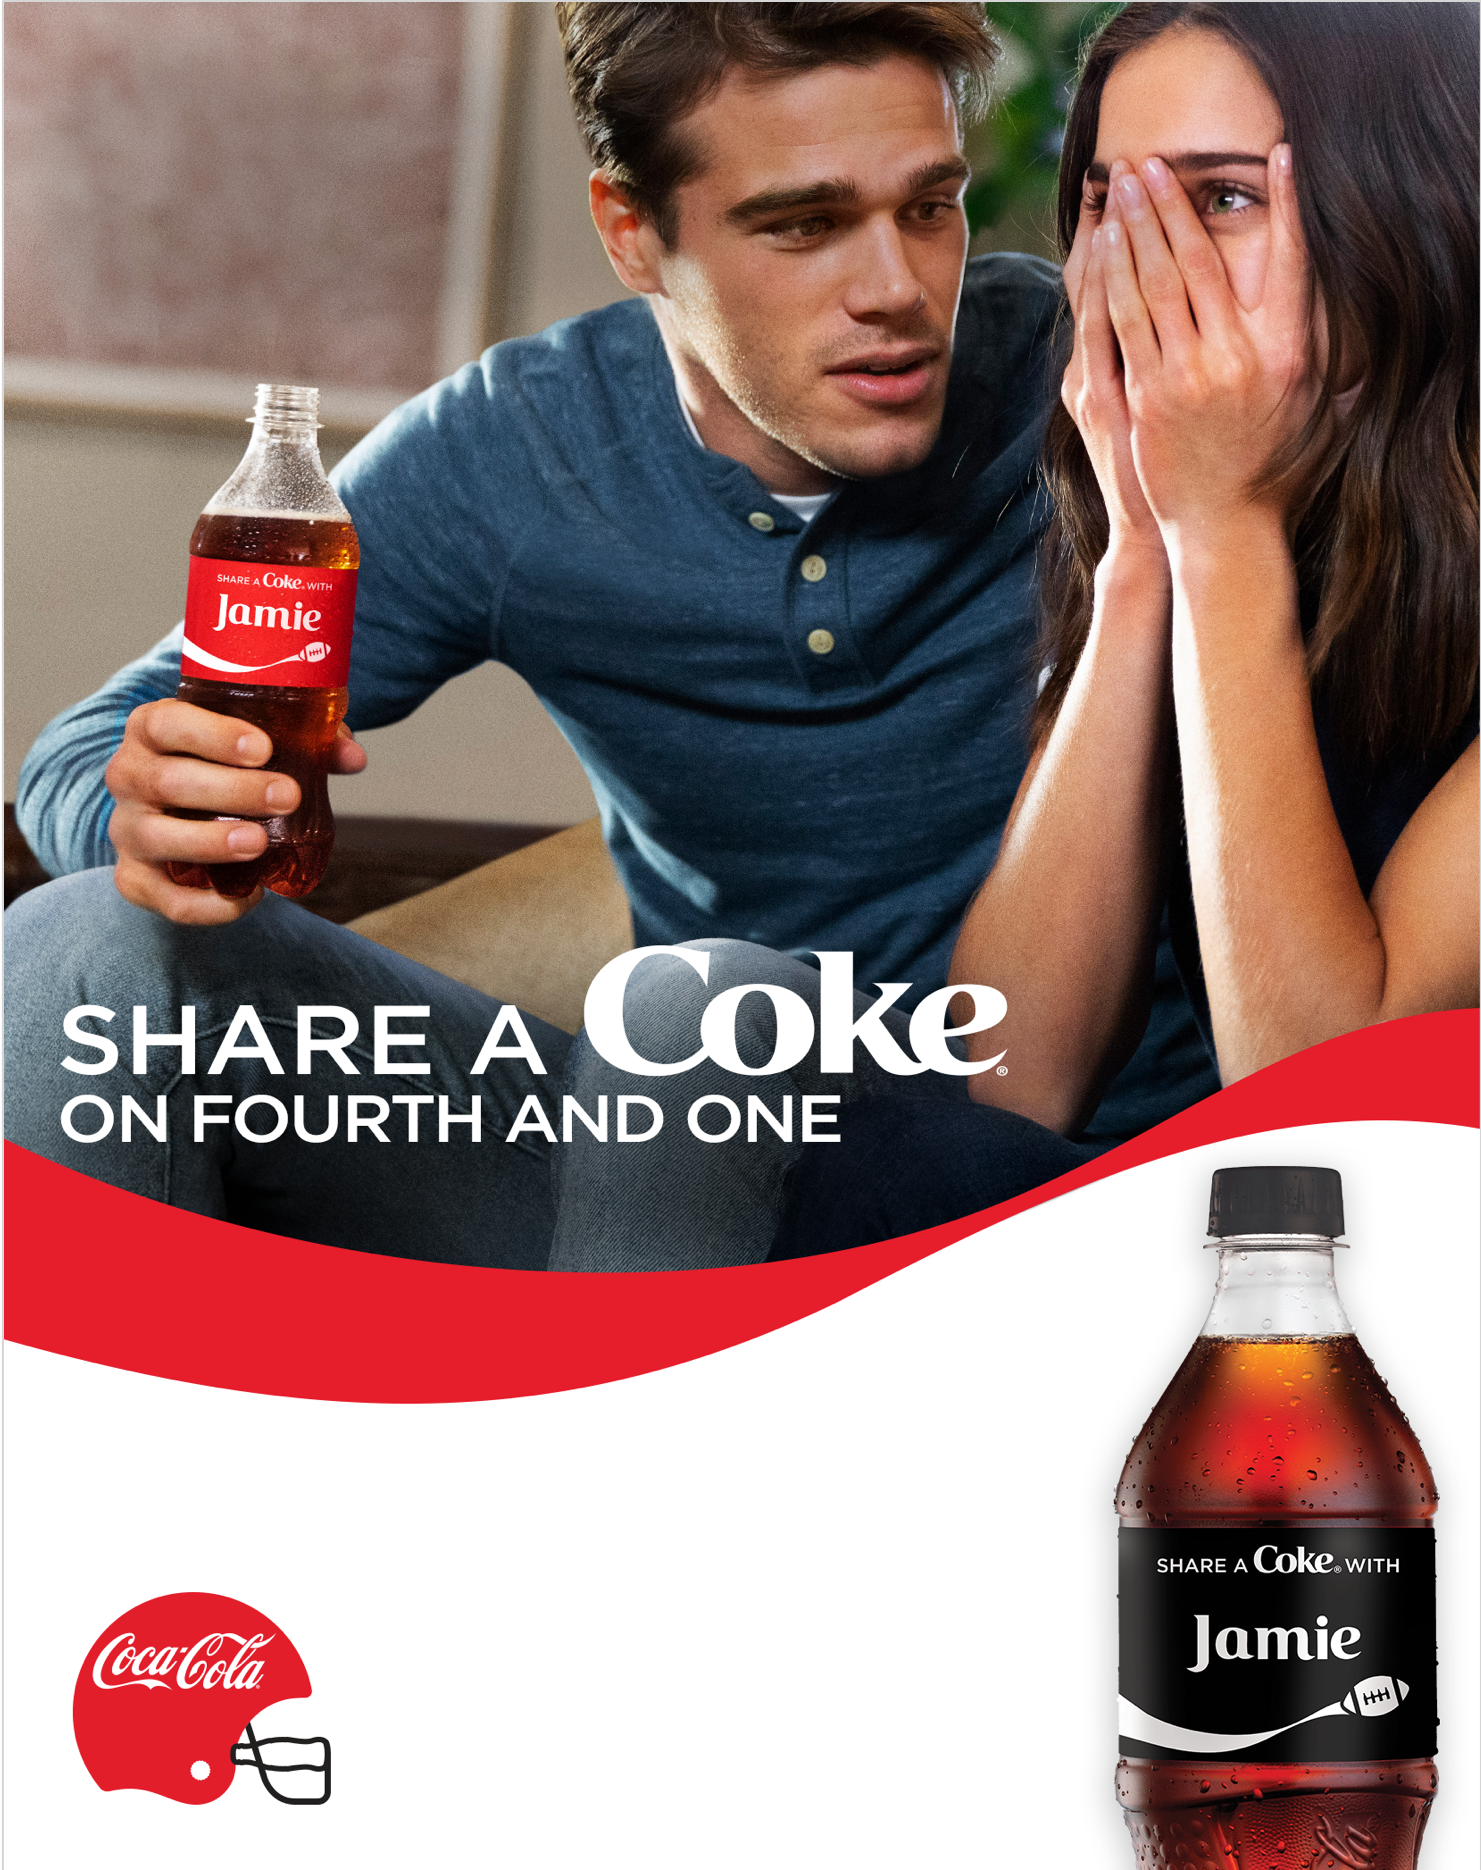 Share_a_Coke_Football_POS9.png